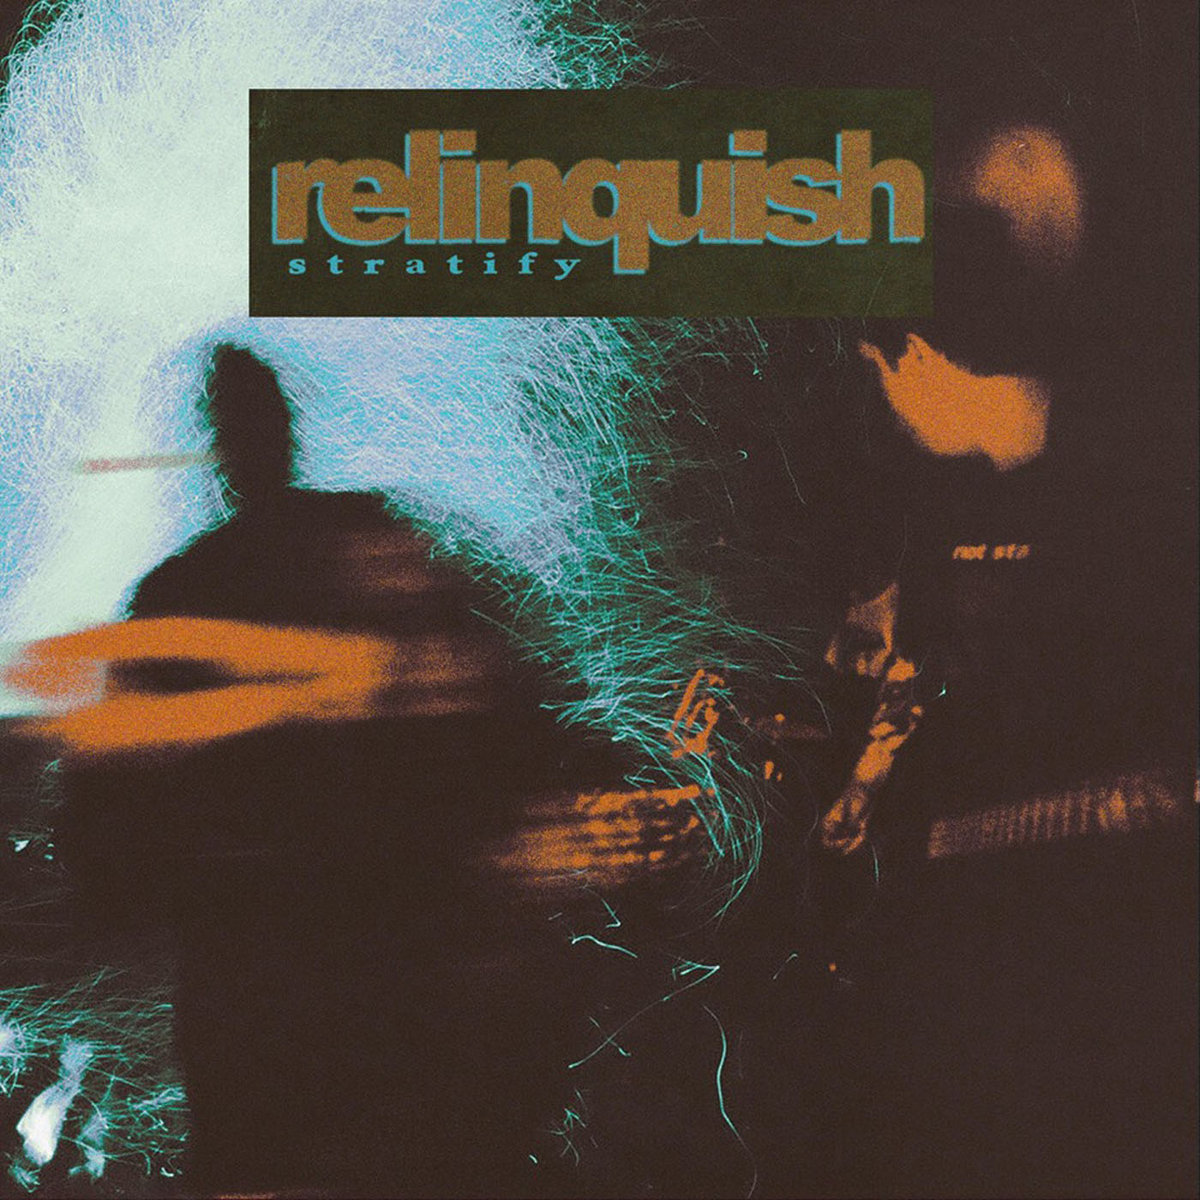 Relinquish - Stratify [Single] (2018)